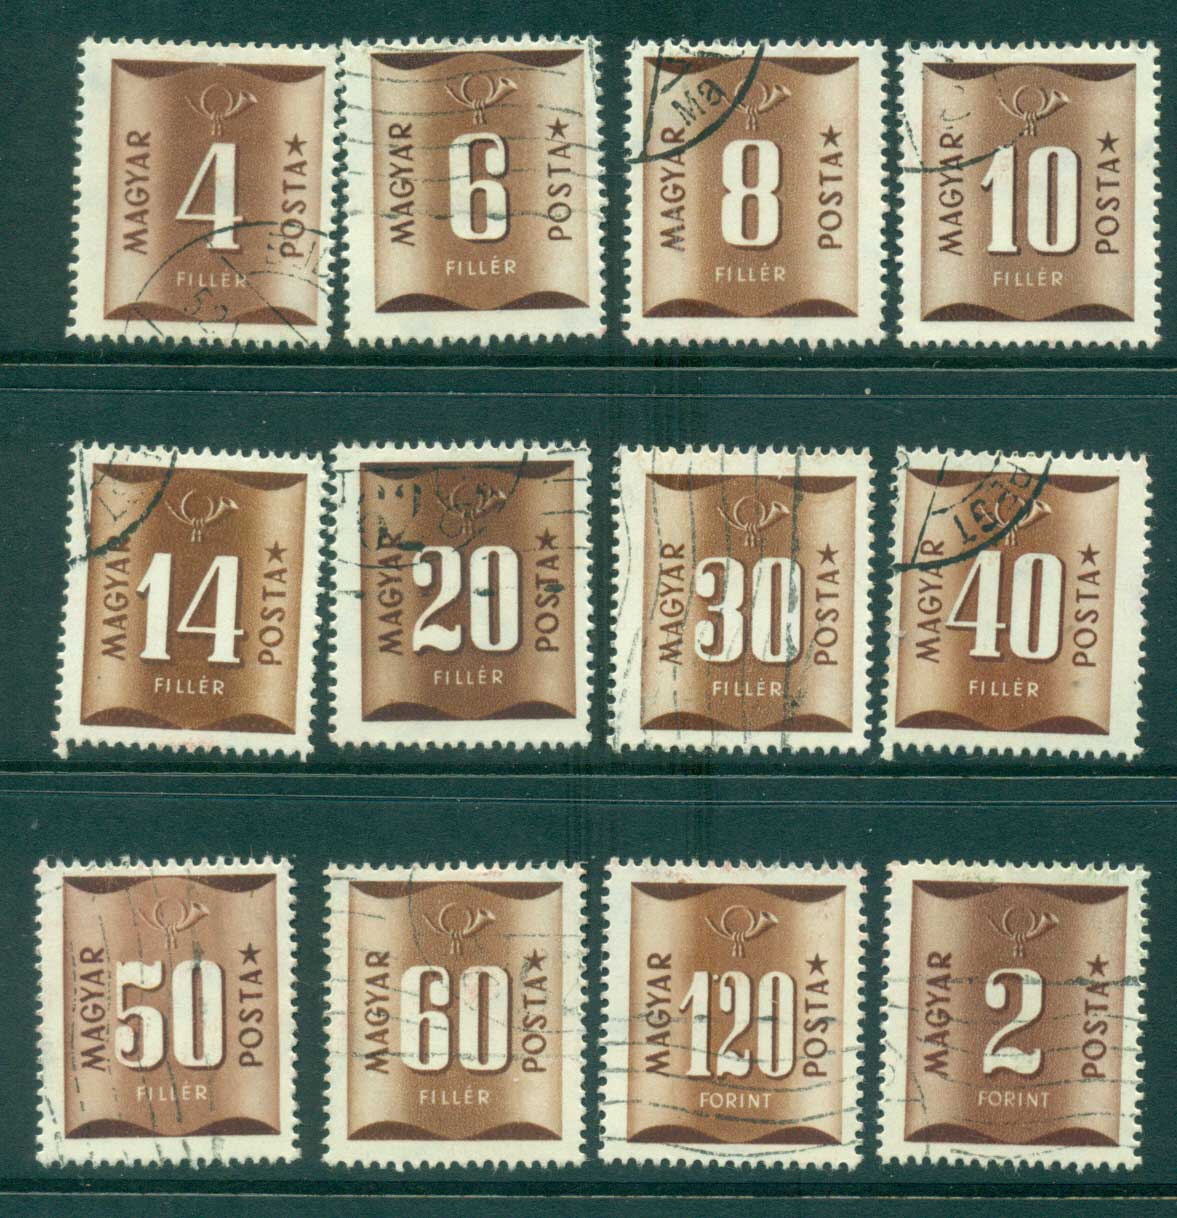 Hungary 1951 Postage Dues FU lot37613